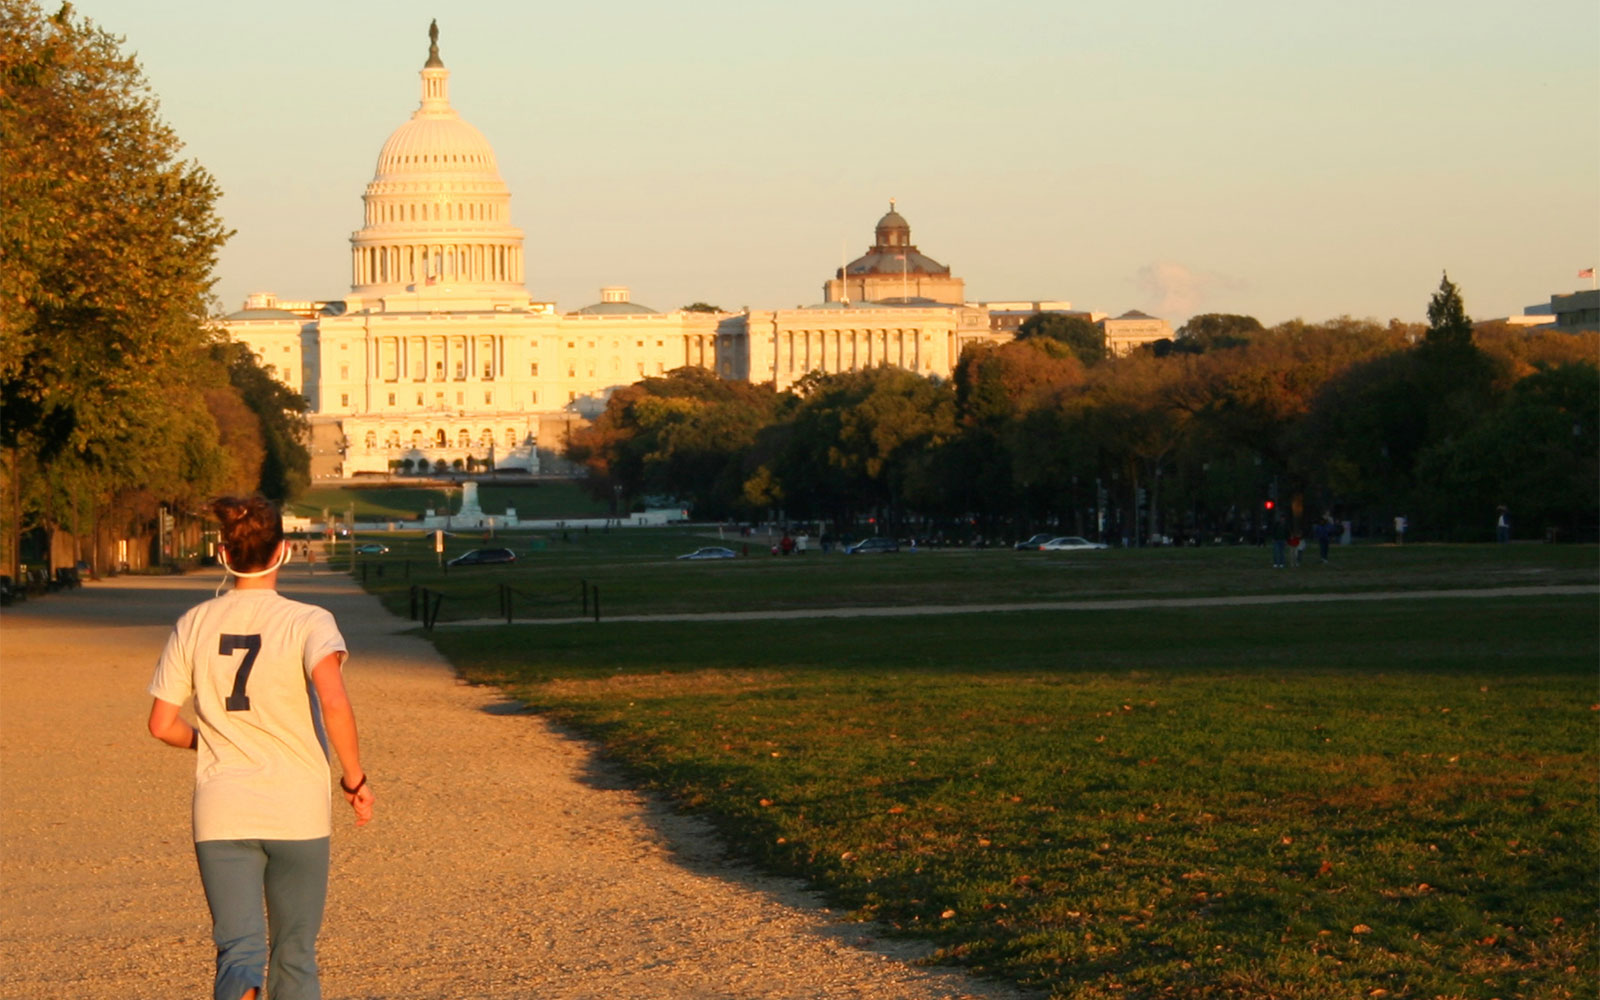 15 Destinations to Inspire Your Next Runner's High: Washington, D.C.